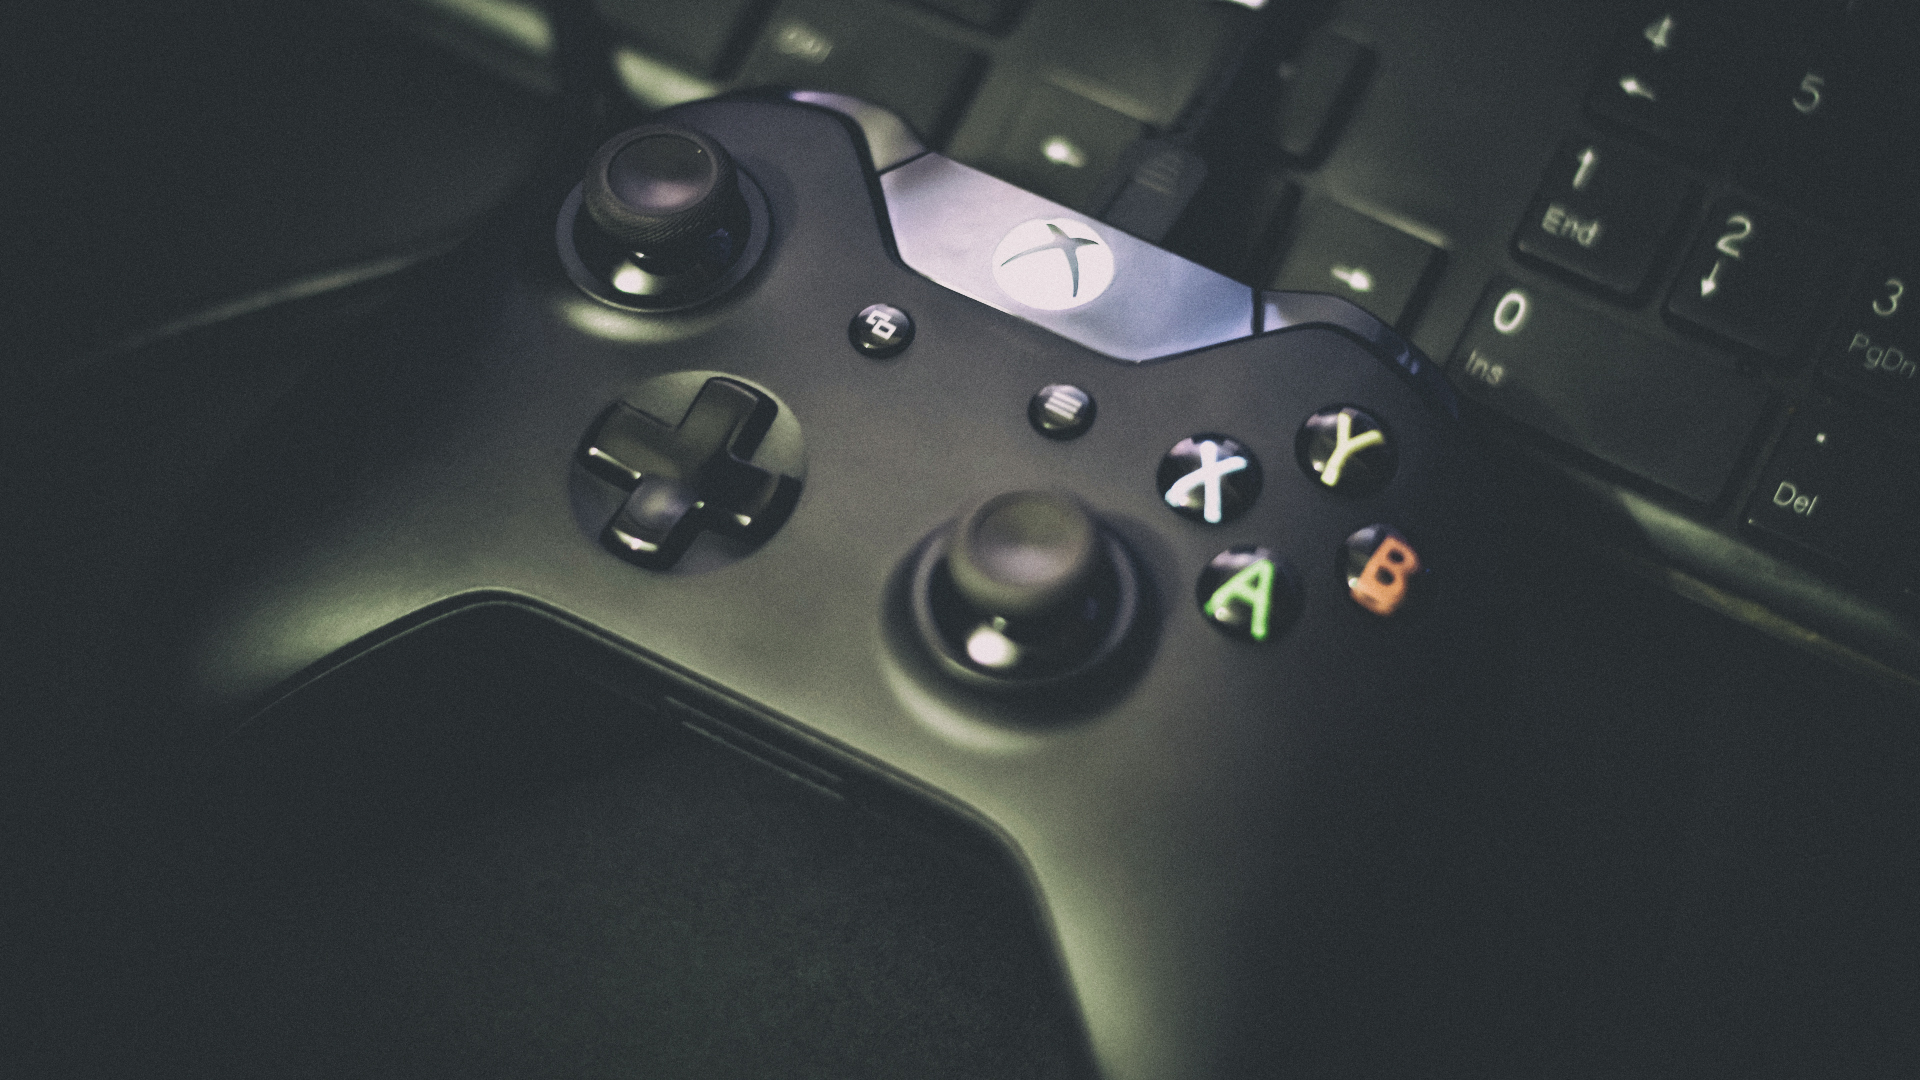 Xbox One Wallpapers: [48+] Xbox One Wallpaper 1920X1080 On WallpaperSafari